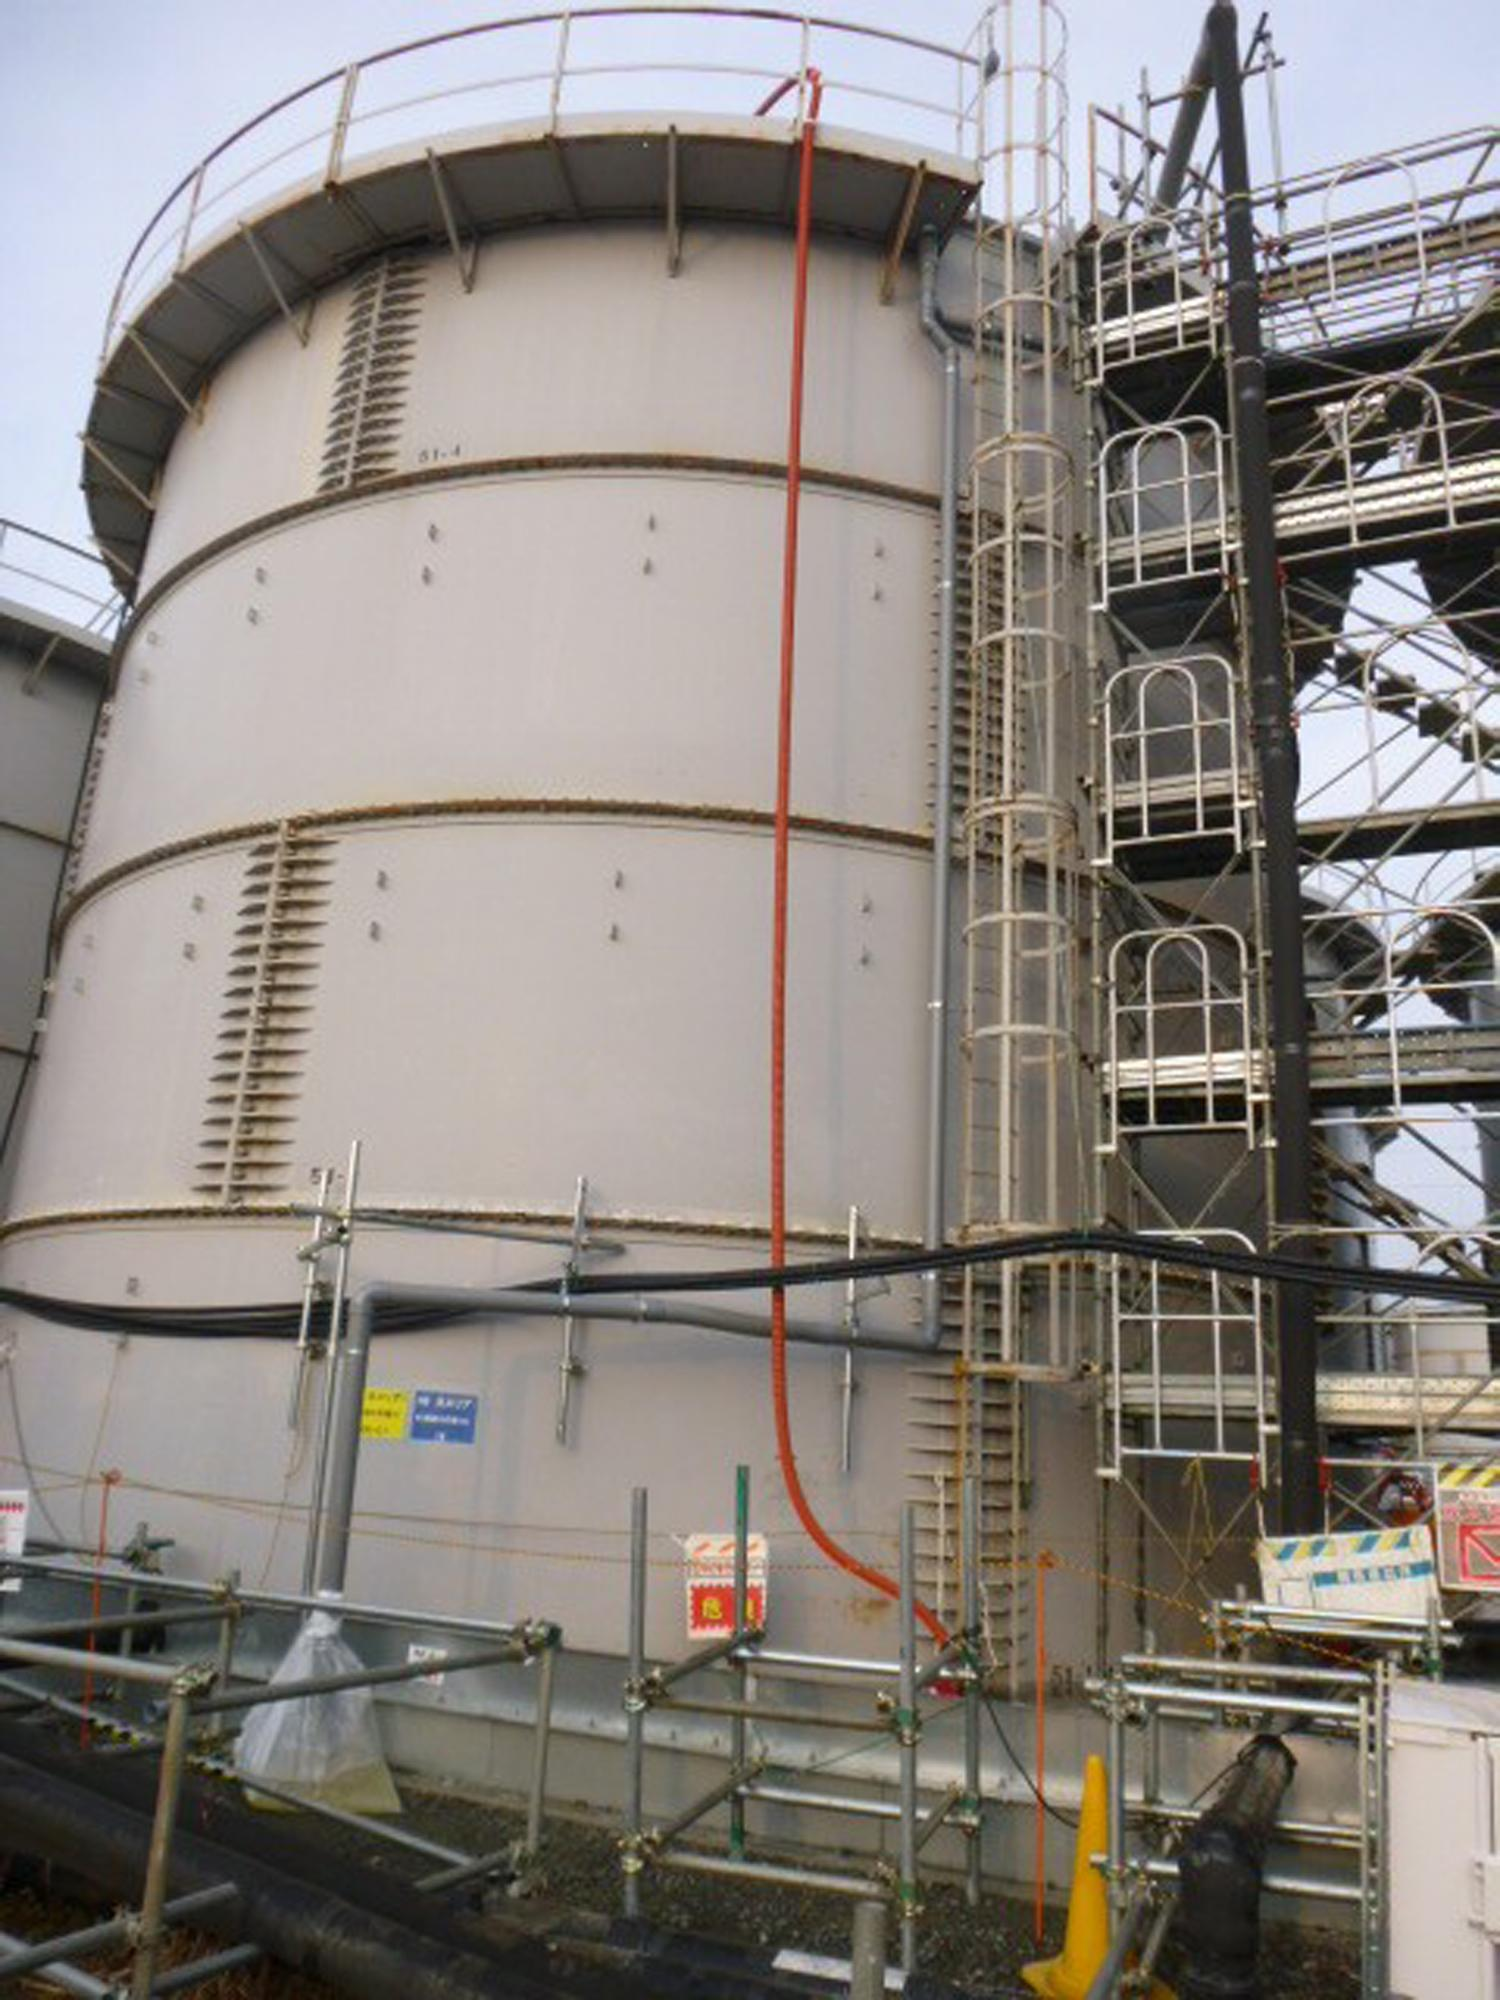 This photo released by Tokyo Electric Power Co. (TEPCO) shows a tank from which radioactive water leaked at Fukushima Dai-ichi nuclear power plant in Okuma, Fukushima Prefecture Thursday, Feb. 20, 2014. Highly radioactive water has overflowed from the storage tank, but the operator says it did not reach the Pacific Ocean. The operator, TEPCO said Thursday that the leak involved partially treated water from early in the crisis, meaning it was more toxic than previous leaks. Three reactors melted at the Fukushima Dai-ichi plant following the 2011 earthquake and tsunami, with radioactive water partially recycled and stored in more than 1,000 tanks. (AP Photo/Tokyo Electric Power Co. )